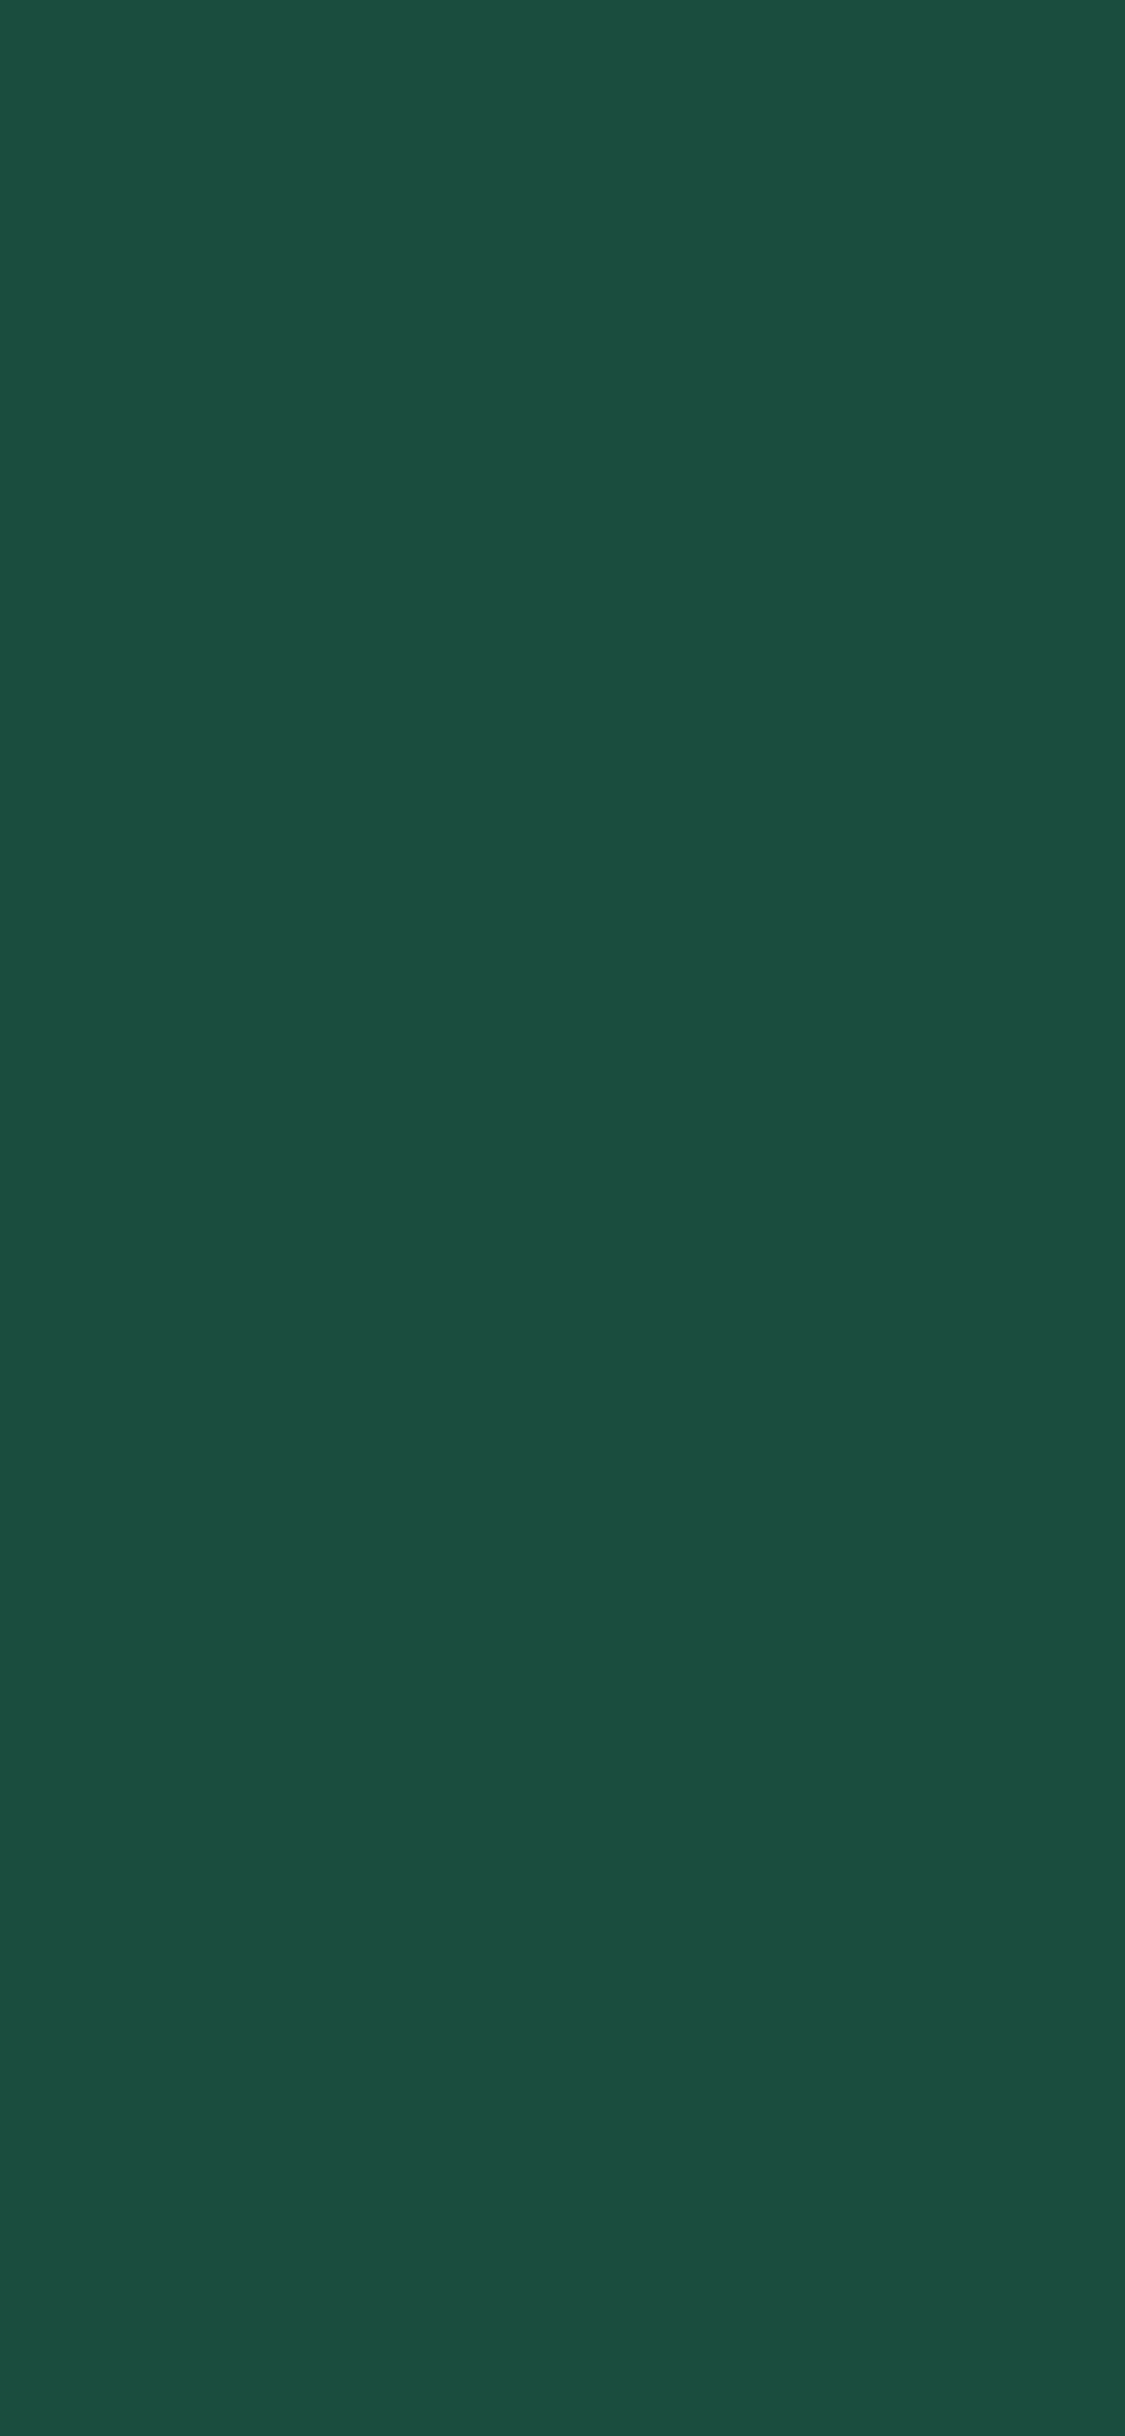 1125x2436 English Green Solid Color Background